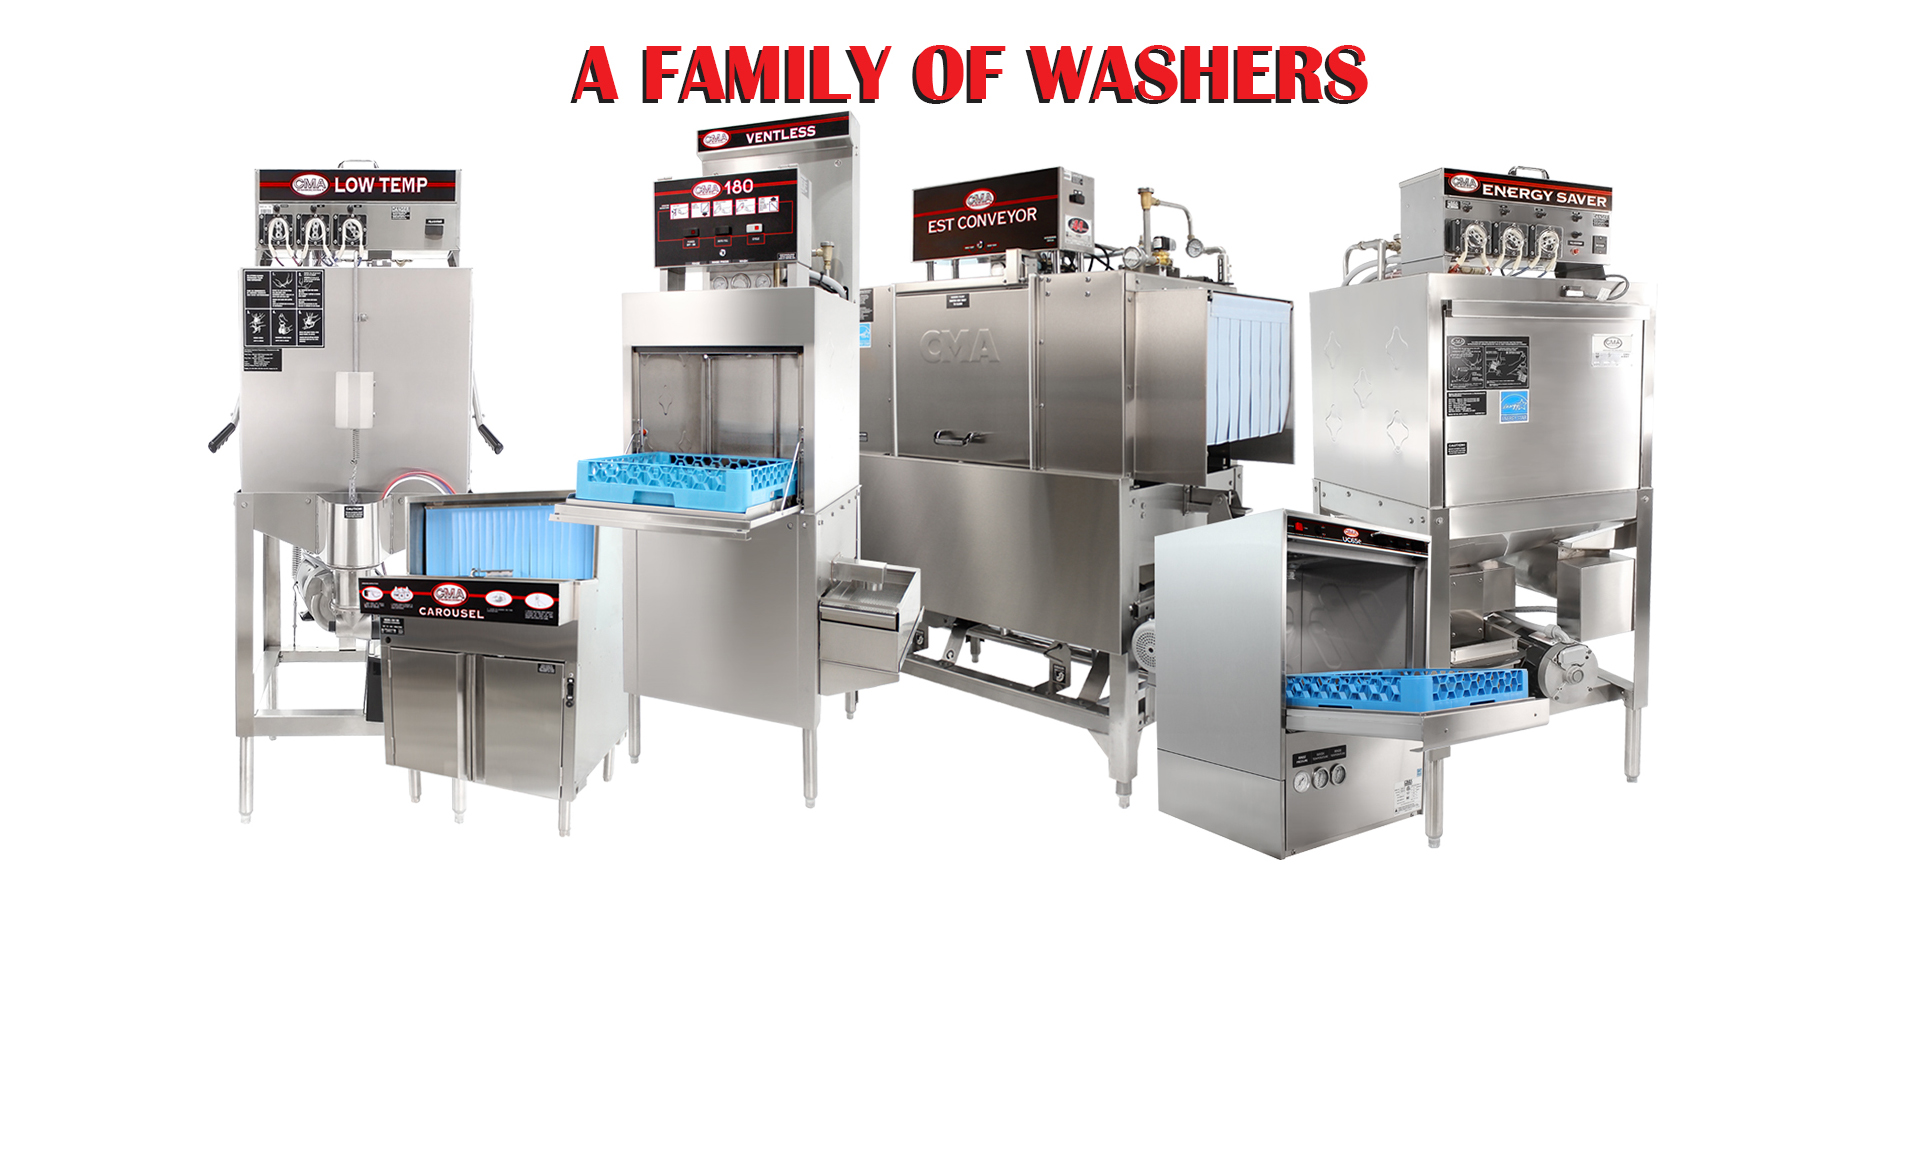 A Family of Washers